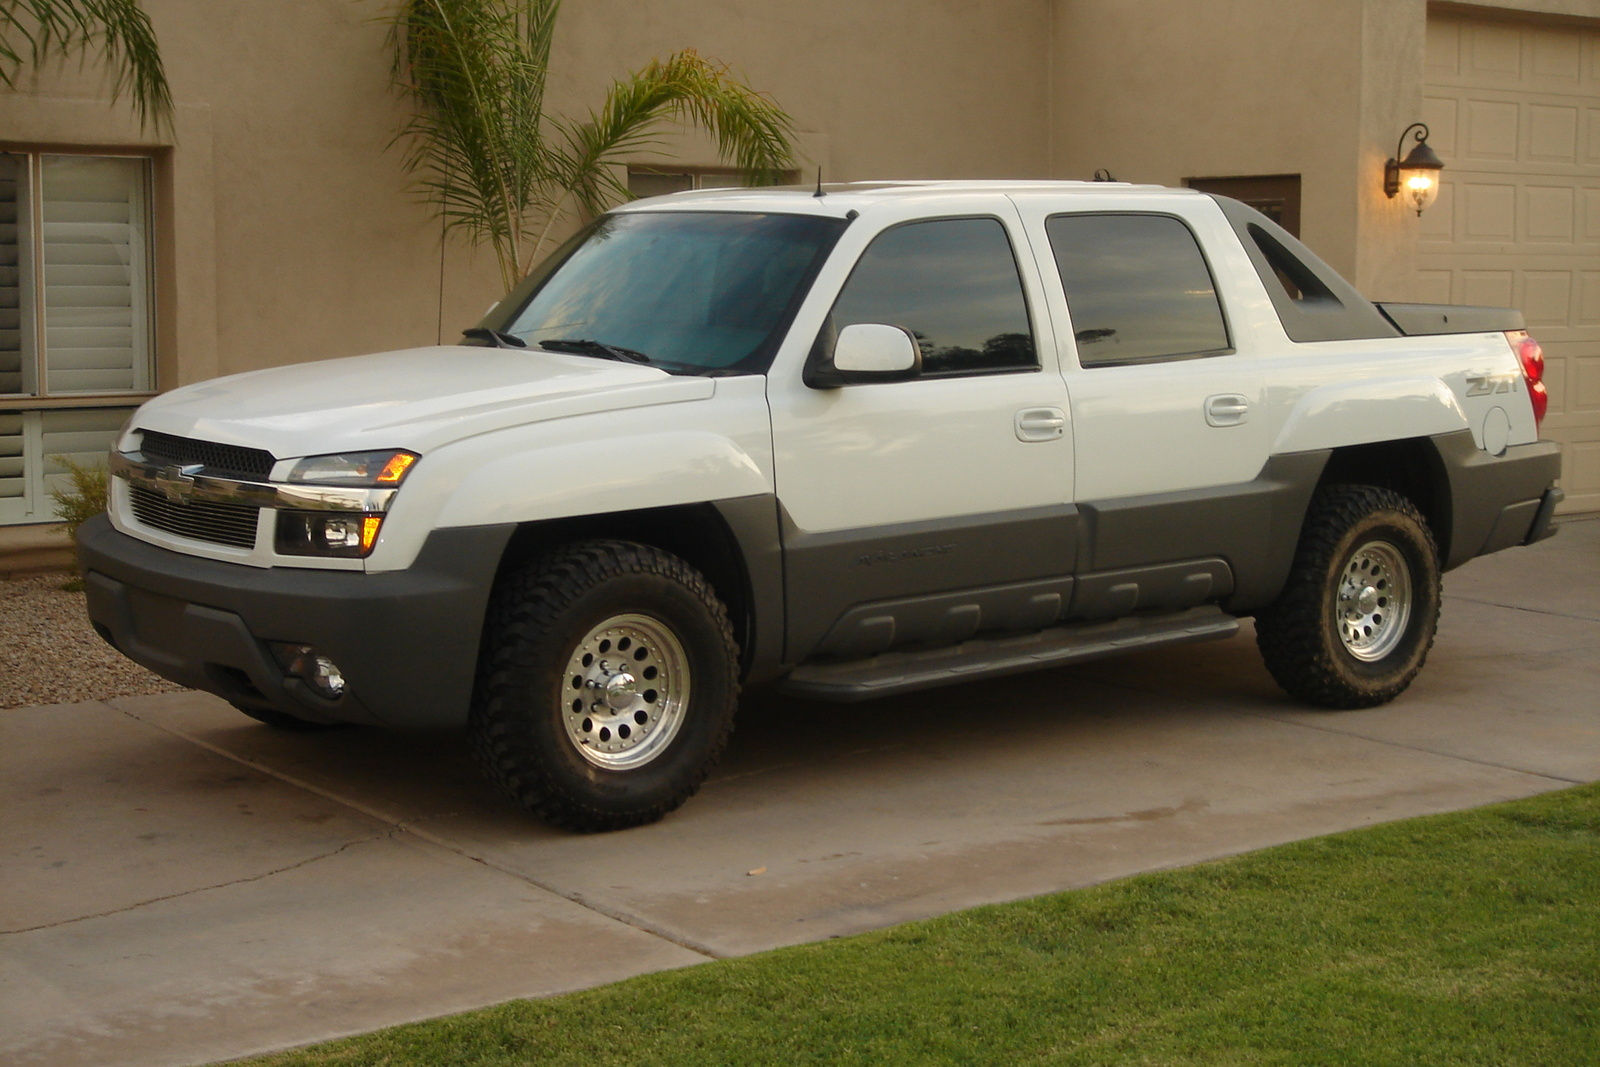 Picture of 2002 Chevrolet Avalanche 4 Dr 1500 4WD Crew Cab SB